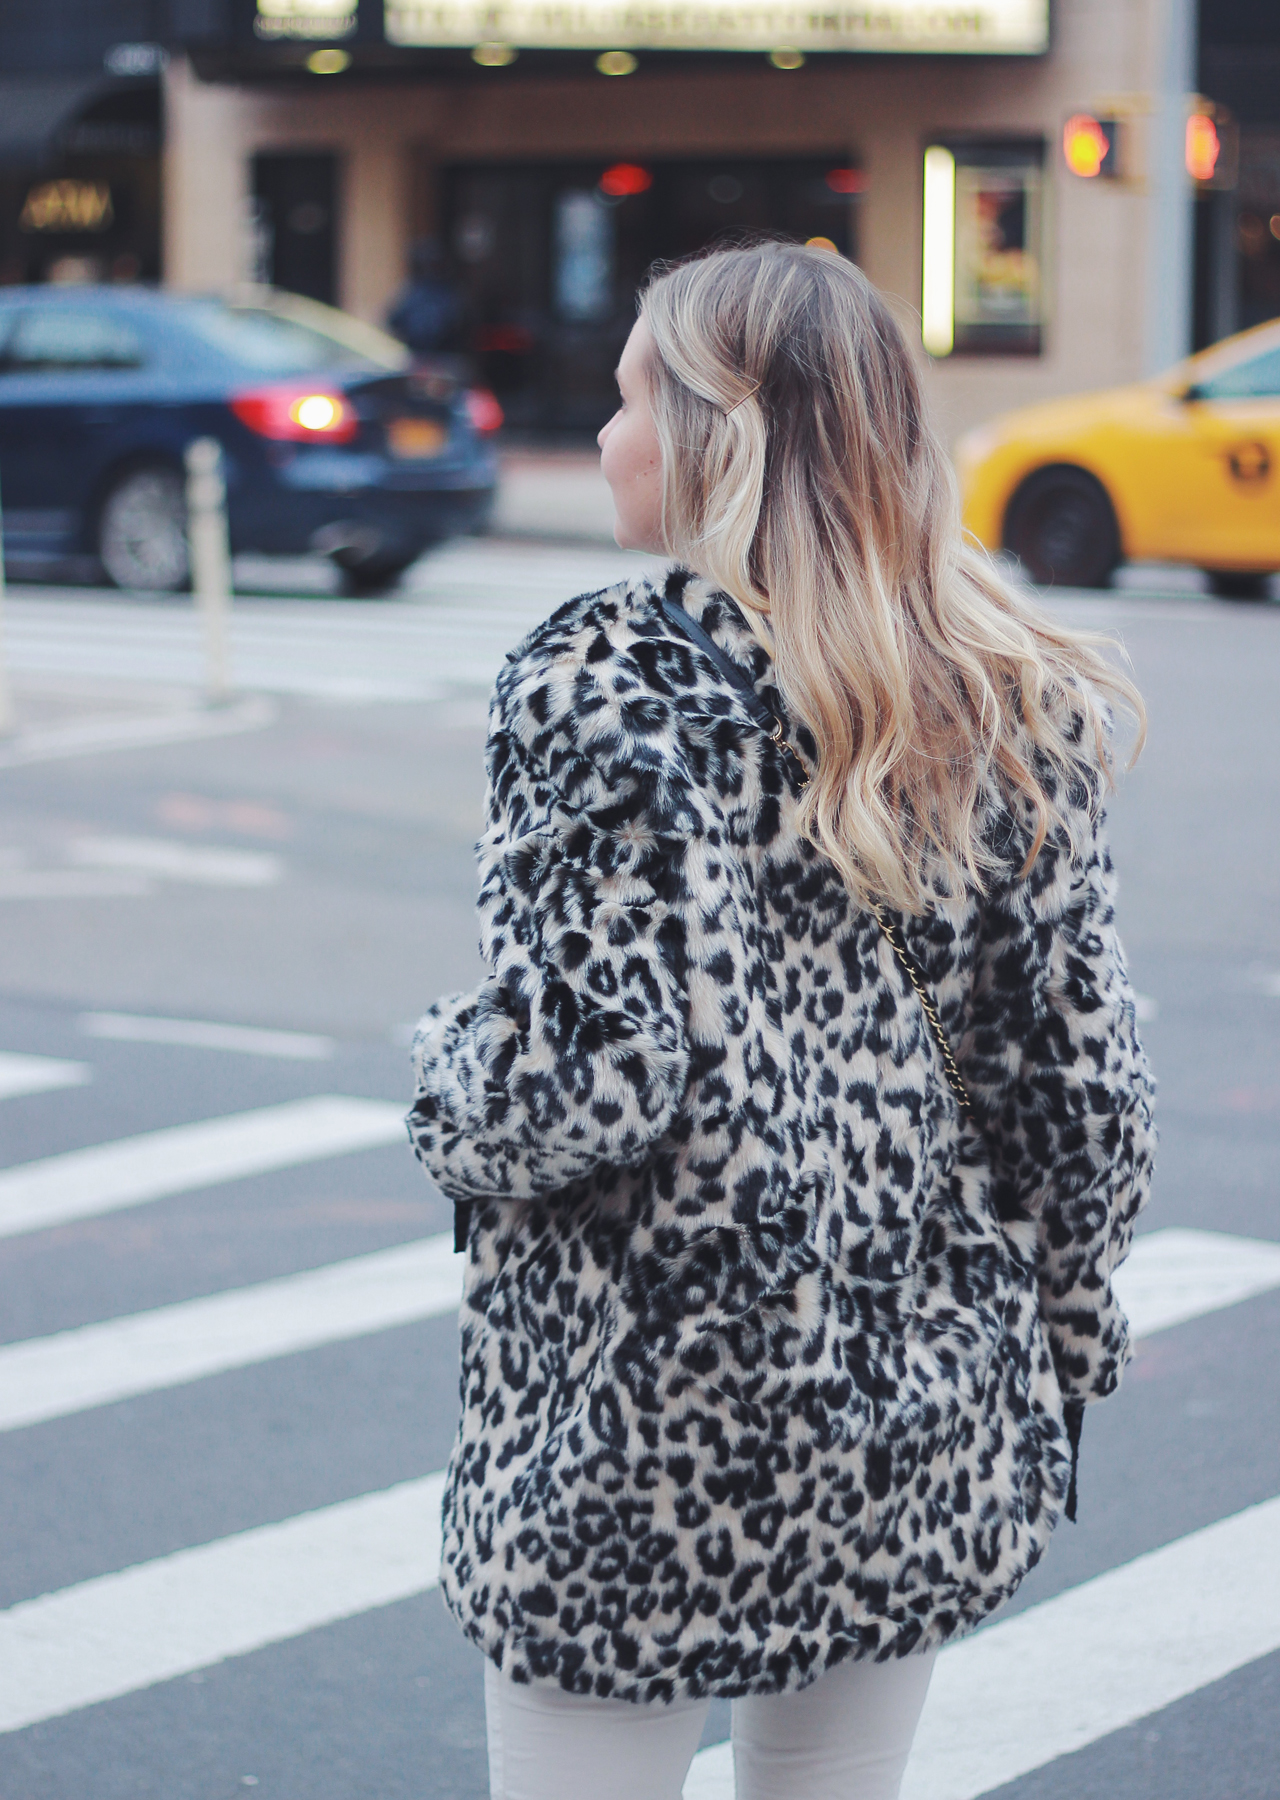 Winter Date Ideas in NYC - What to Wear and Where to Go